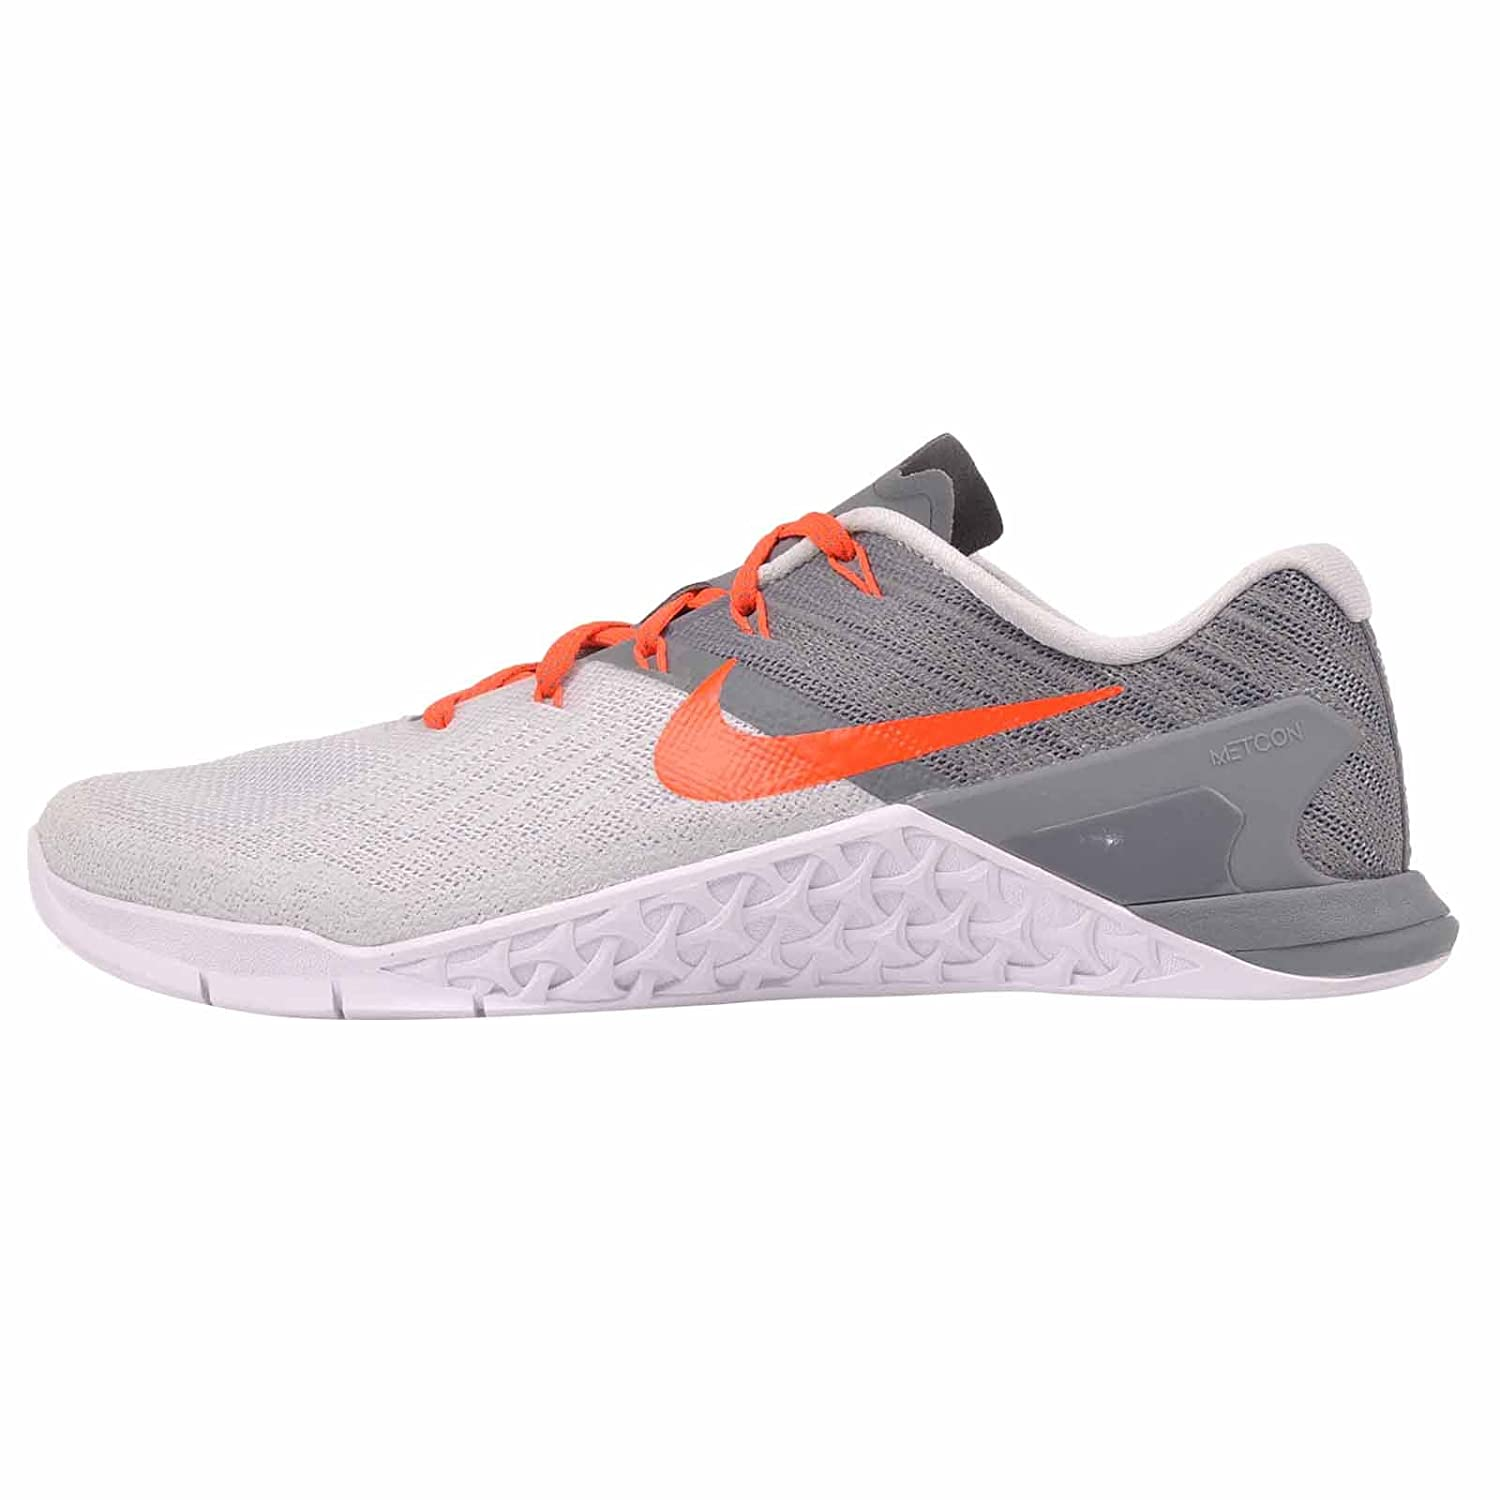 Nike Womens Metcon 3 Training Shoes B01N2VPEII 7.5 B(M) US|Pure Platinum / Total Crimson